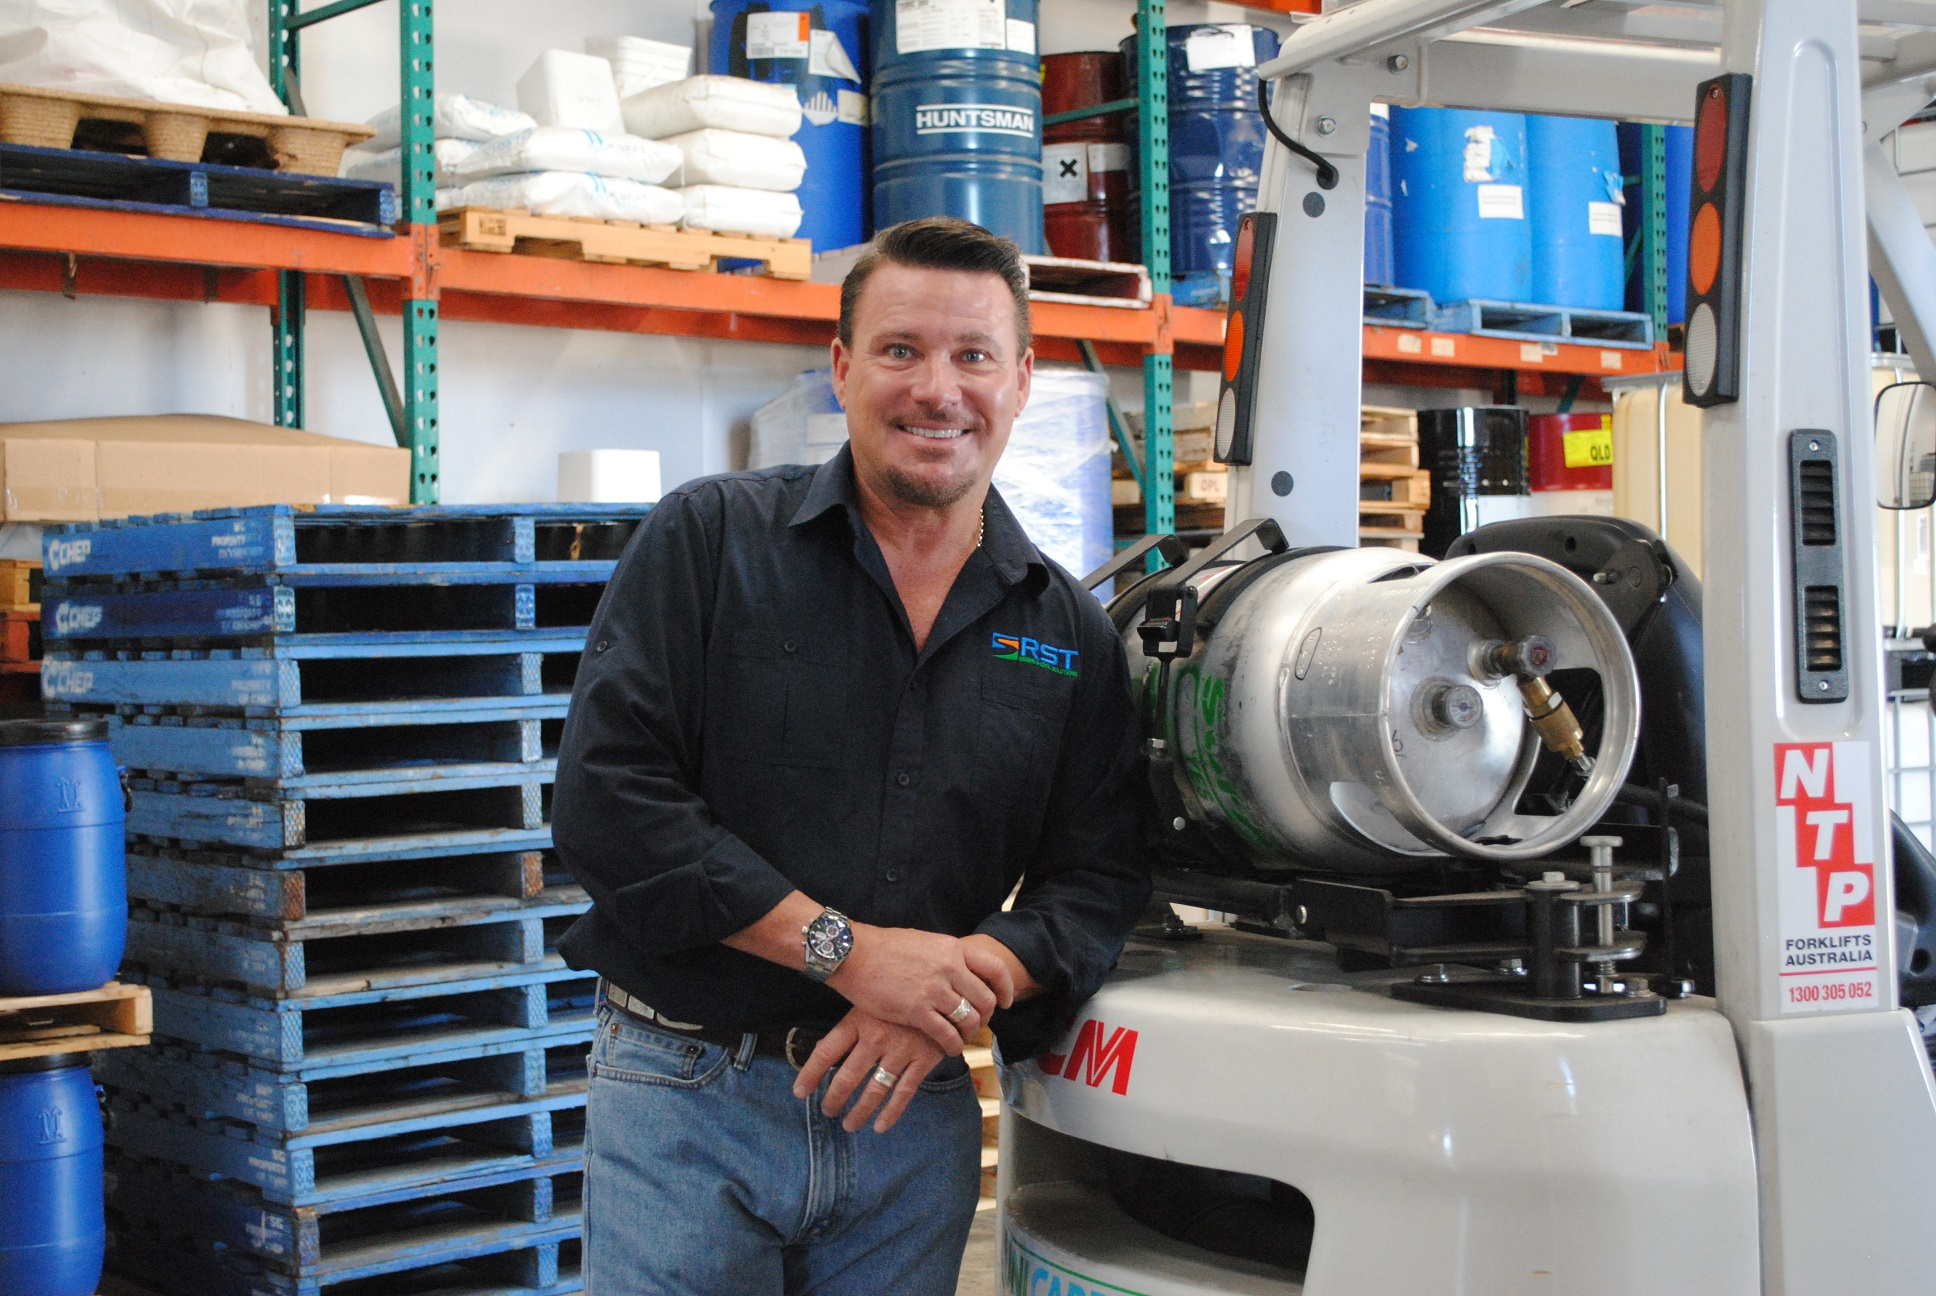 RST Operations and Technical director David Handel